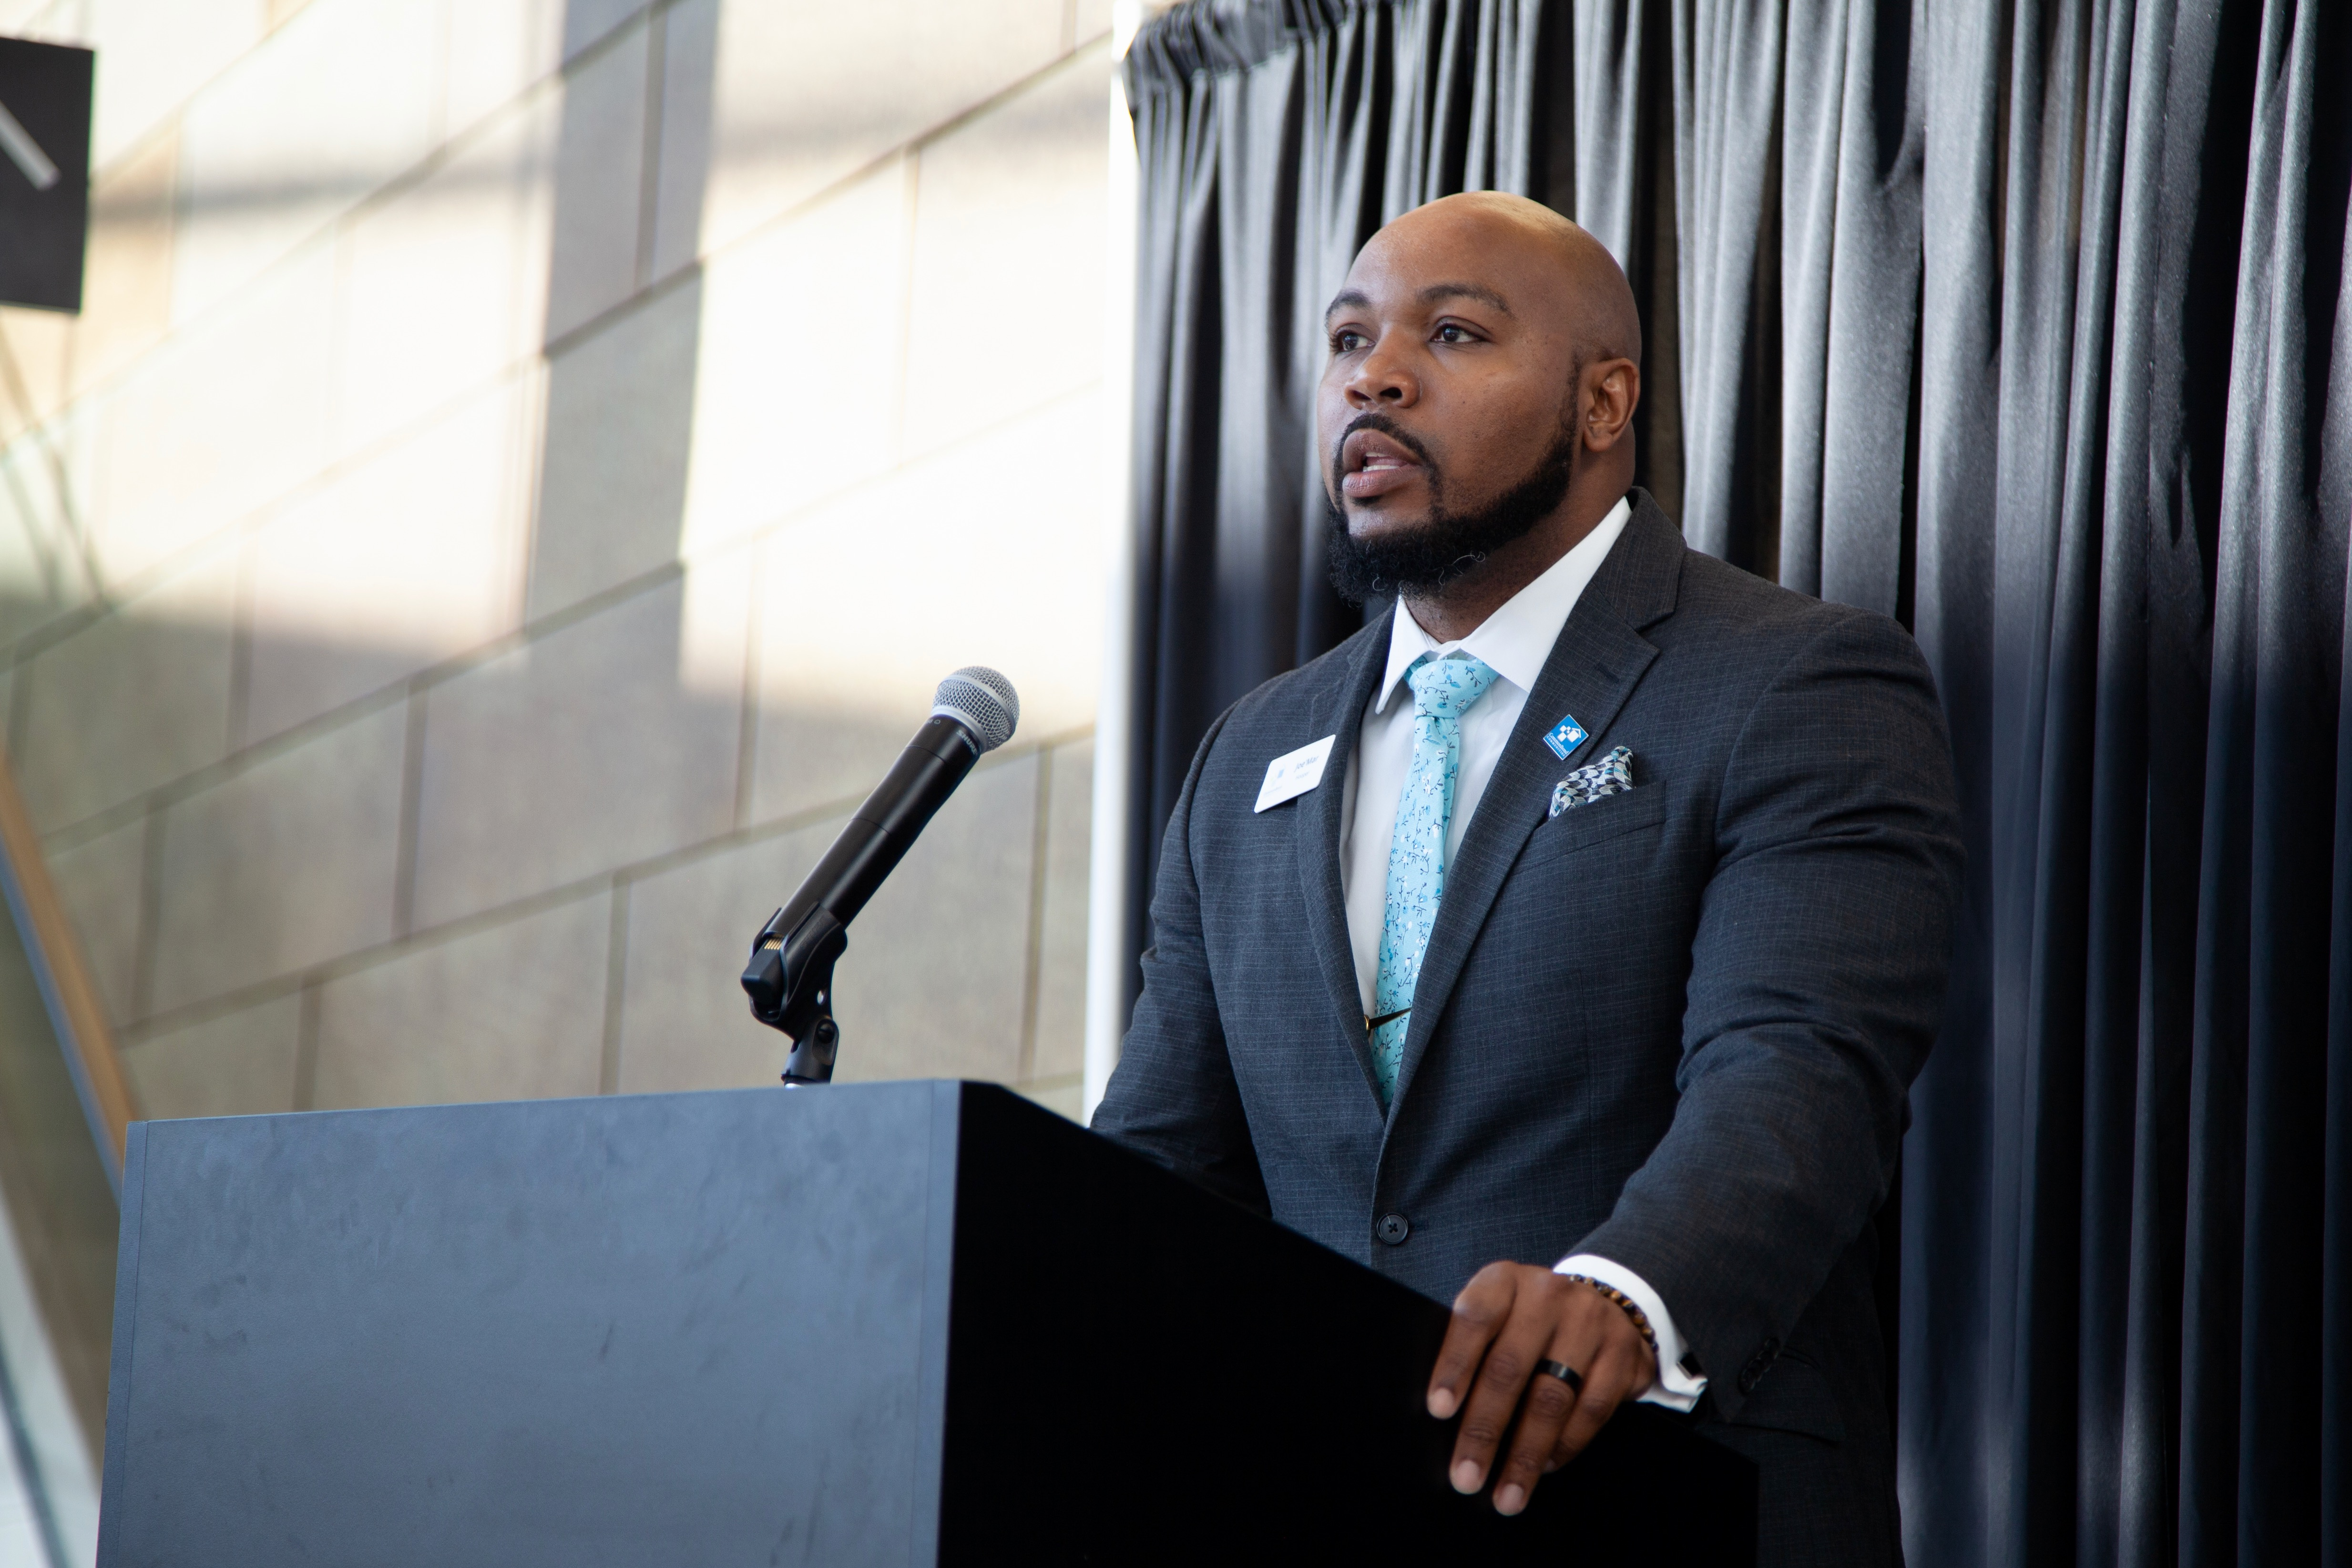 New Safe and Sound Executive Director Joe'Mar Hooper hopes to build on the organization's success and bring even more partners to the table. Photo by Edgar Mendez/NNS.